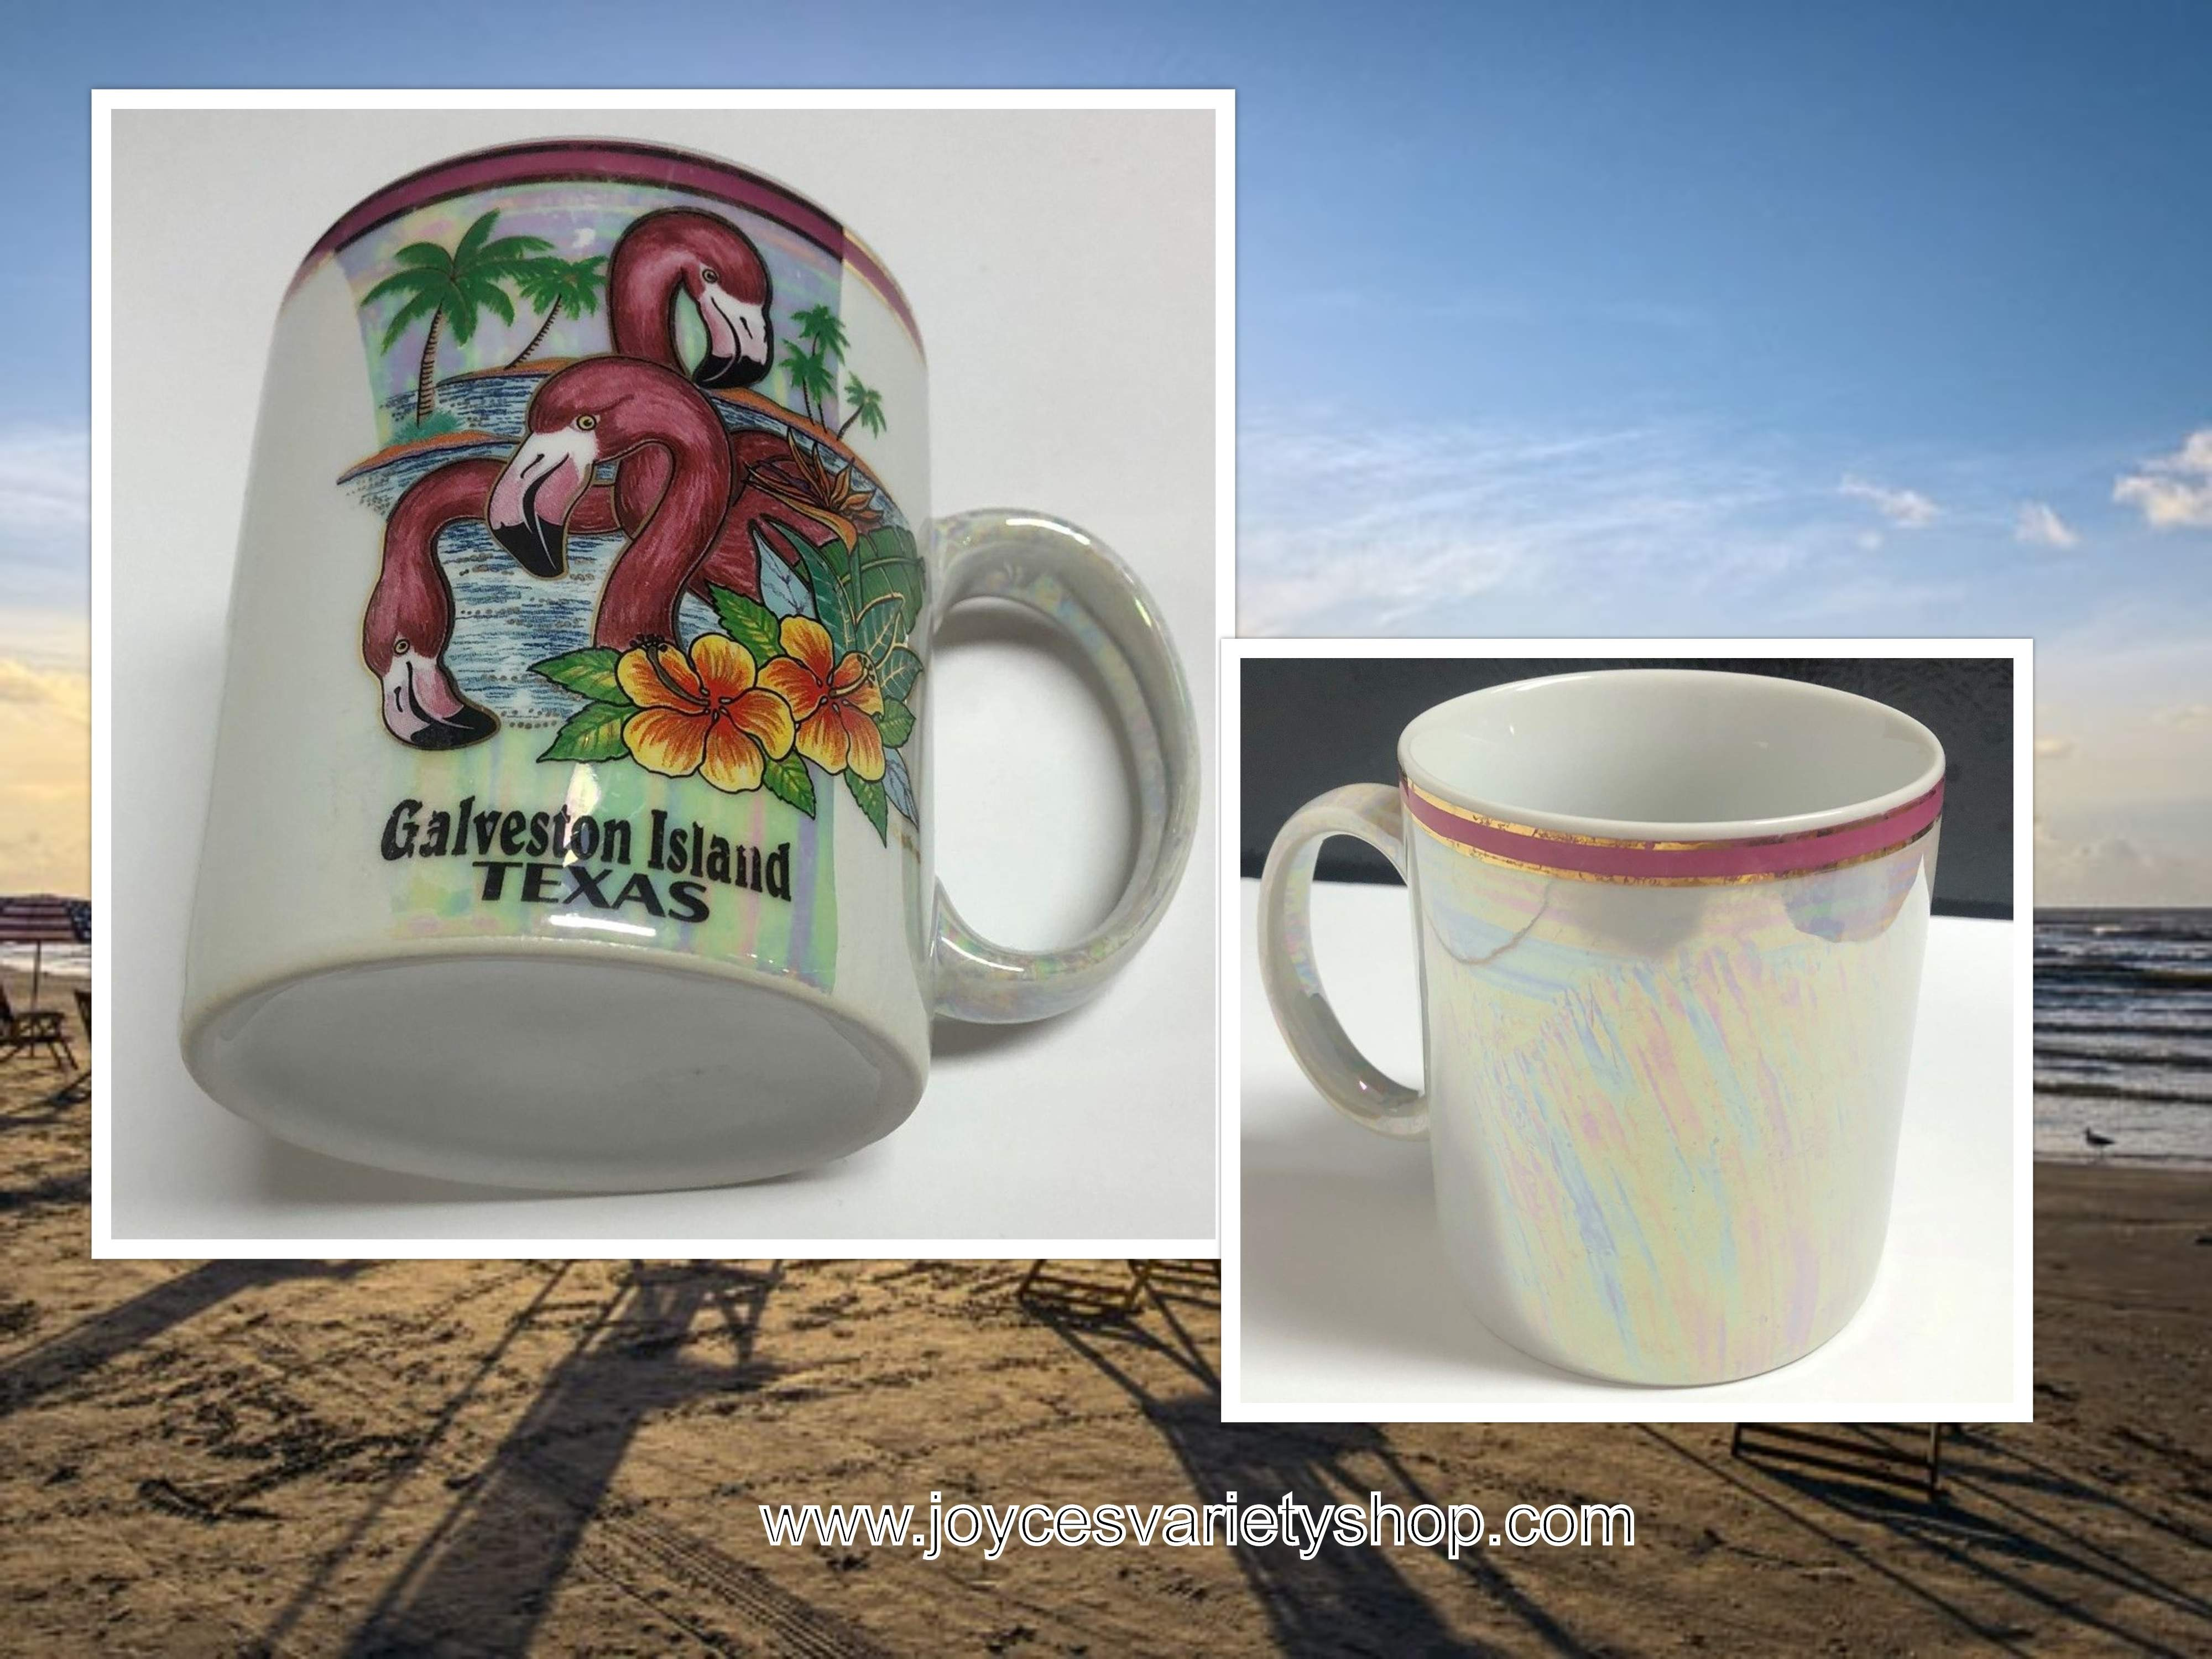 Galveston Island Texas Souvenir Collector Coffee Cup Iridescent Porcelain 6 Oz.